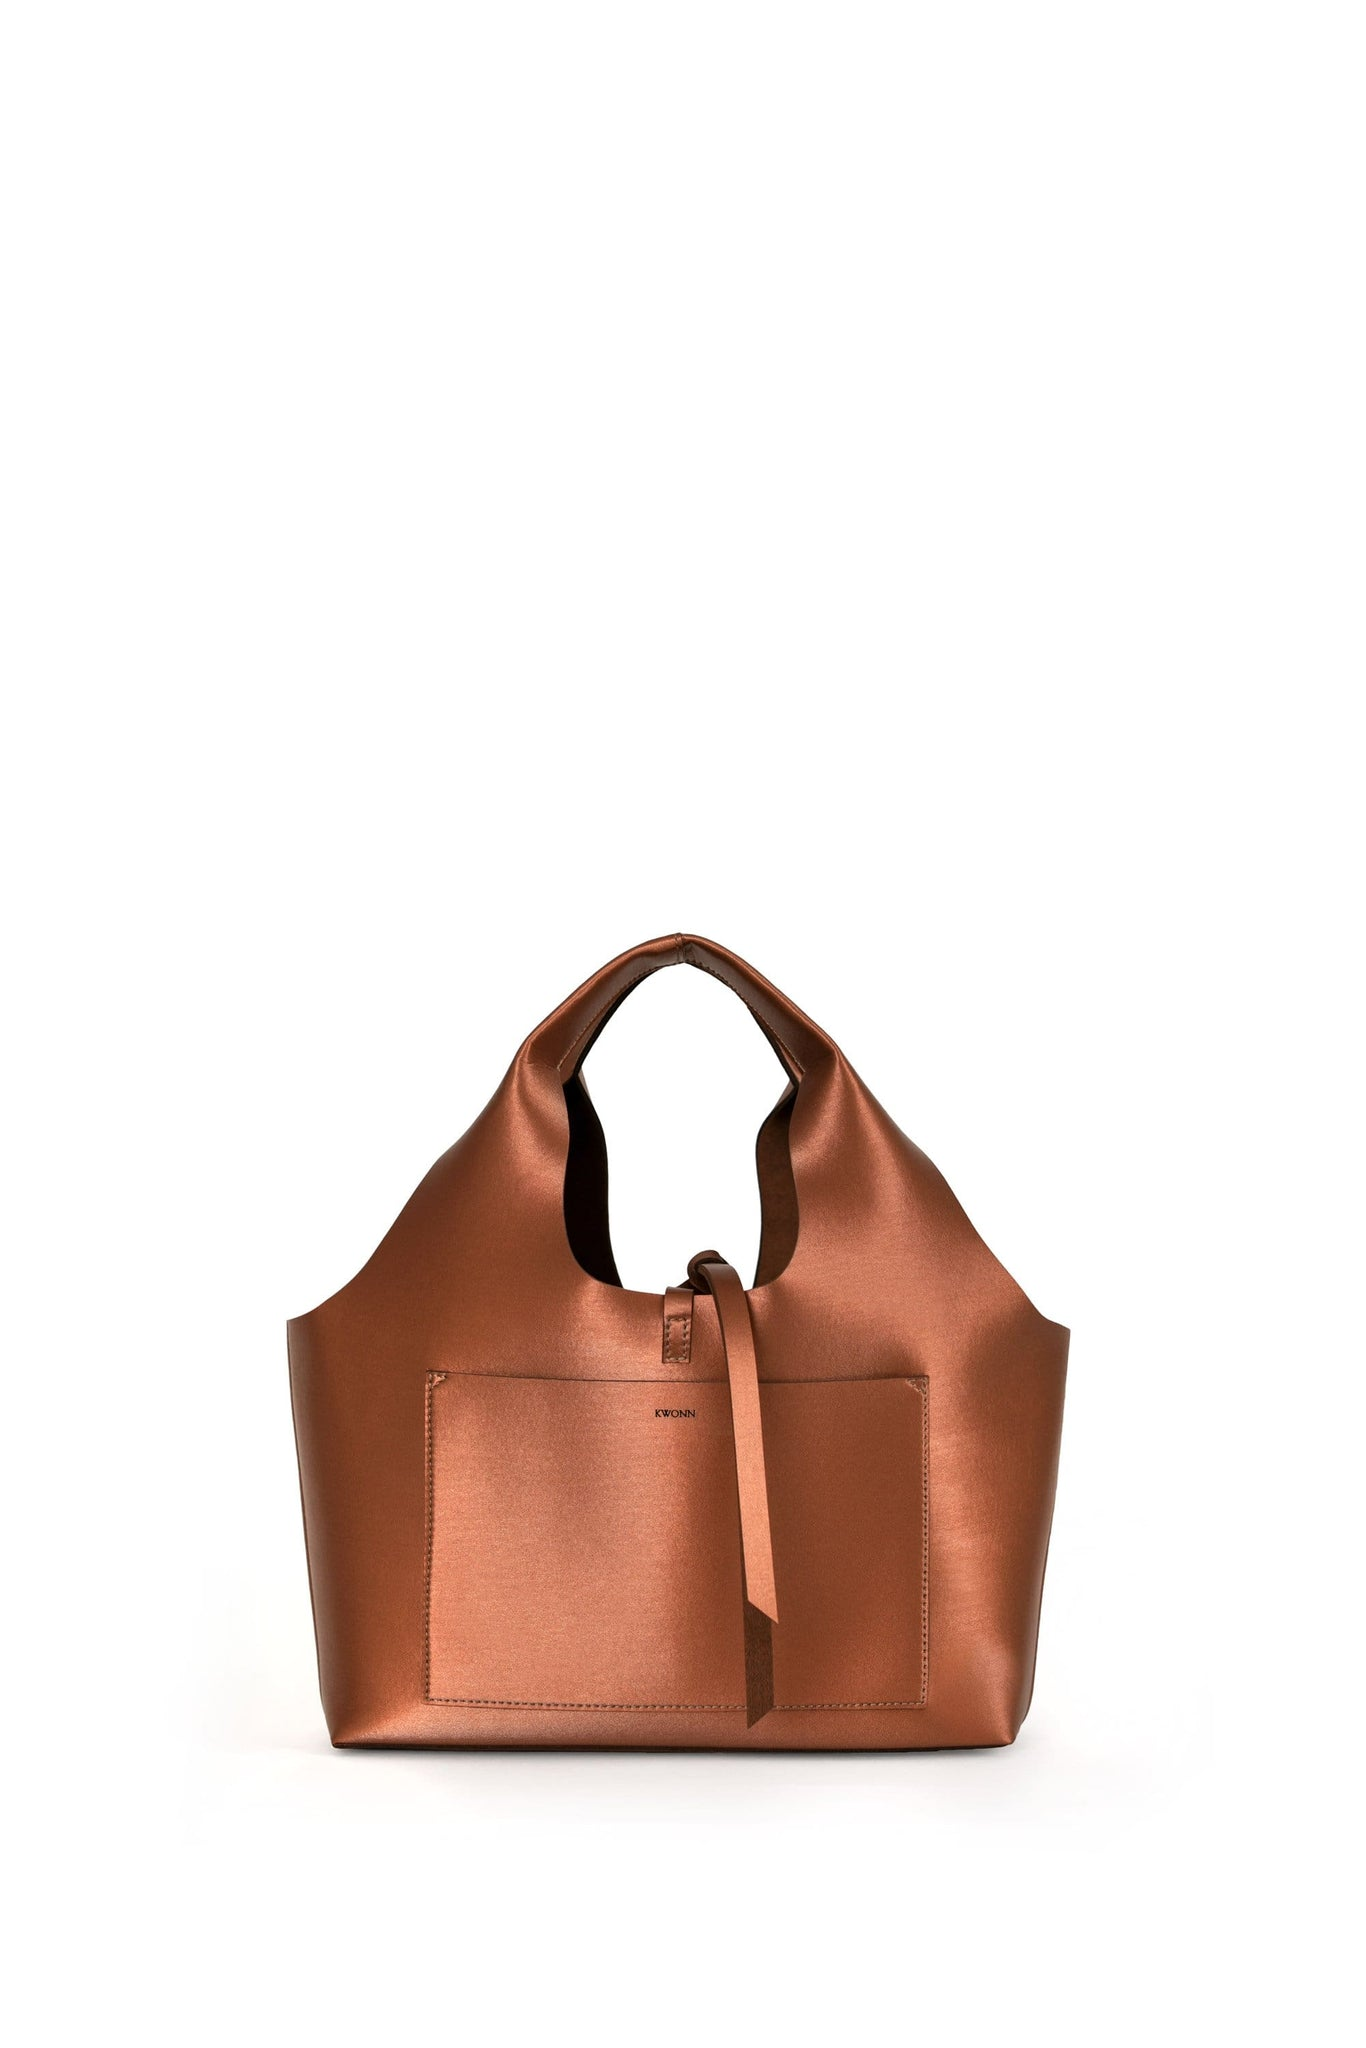 KWONN BAG Copper Tote vegan bags luxury bags handbags